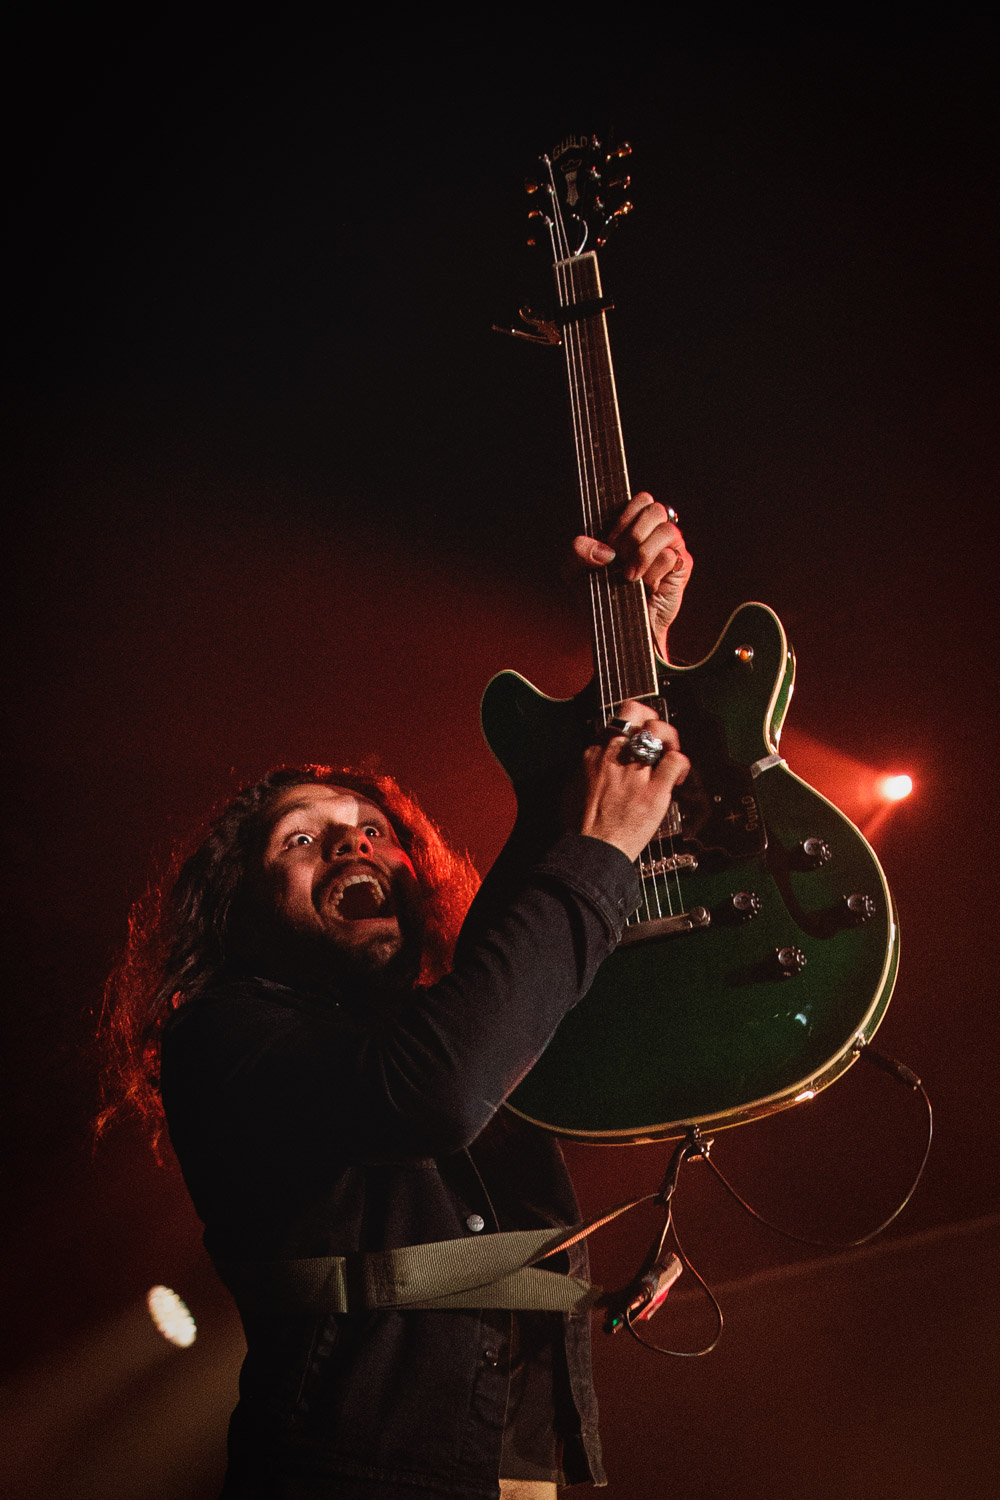 Gang_of_Youths_8_Sept_17_05.jpg